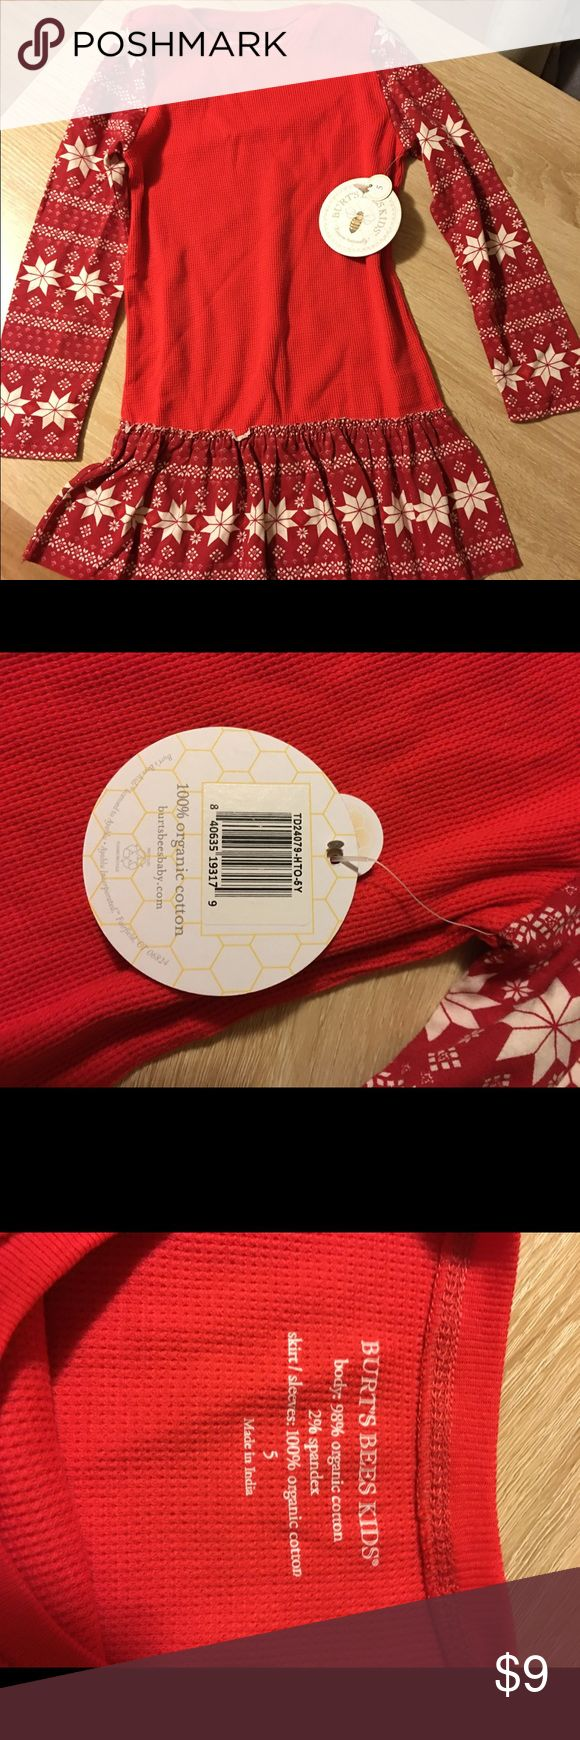 Burts bees red waffle snowflake dress. NWT (5) Long sleeve holiday print. Cotton waffle organic cotton size 5 NWT. Size 4 worn once Burt's Bees Baby Dresses Casual